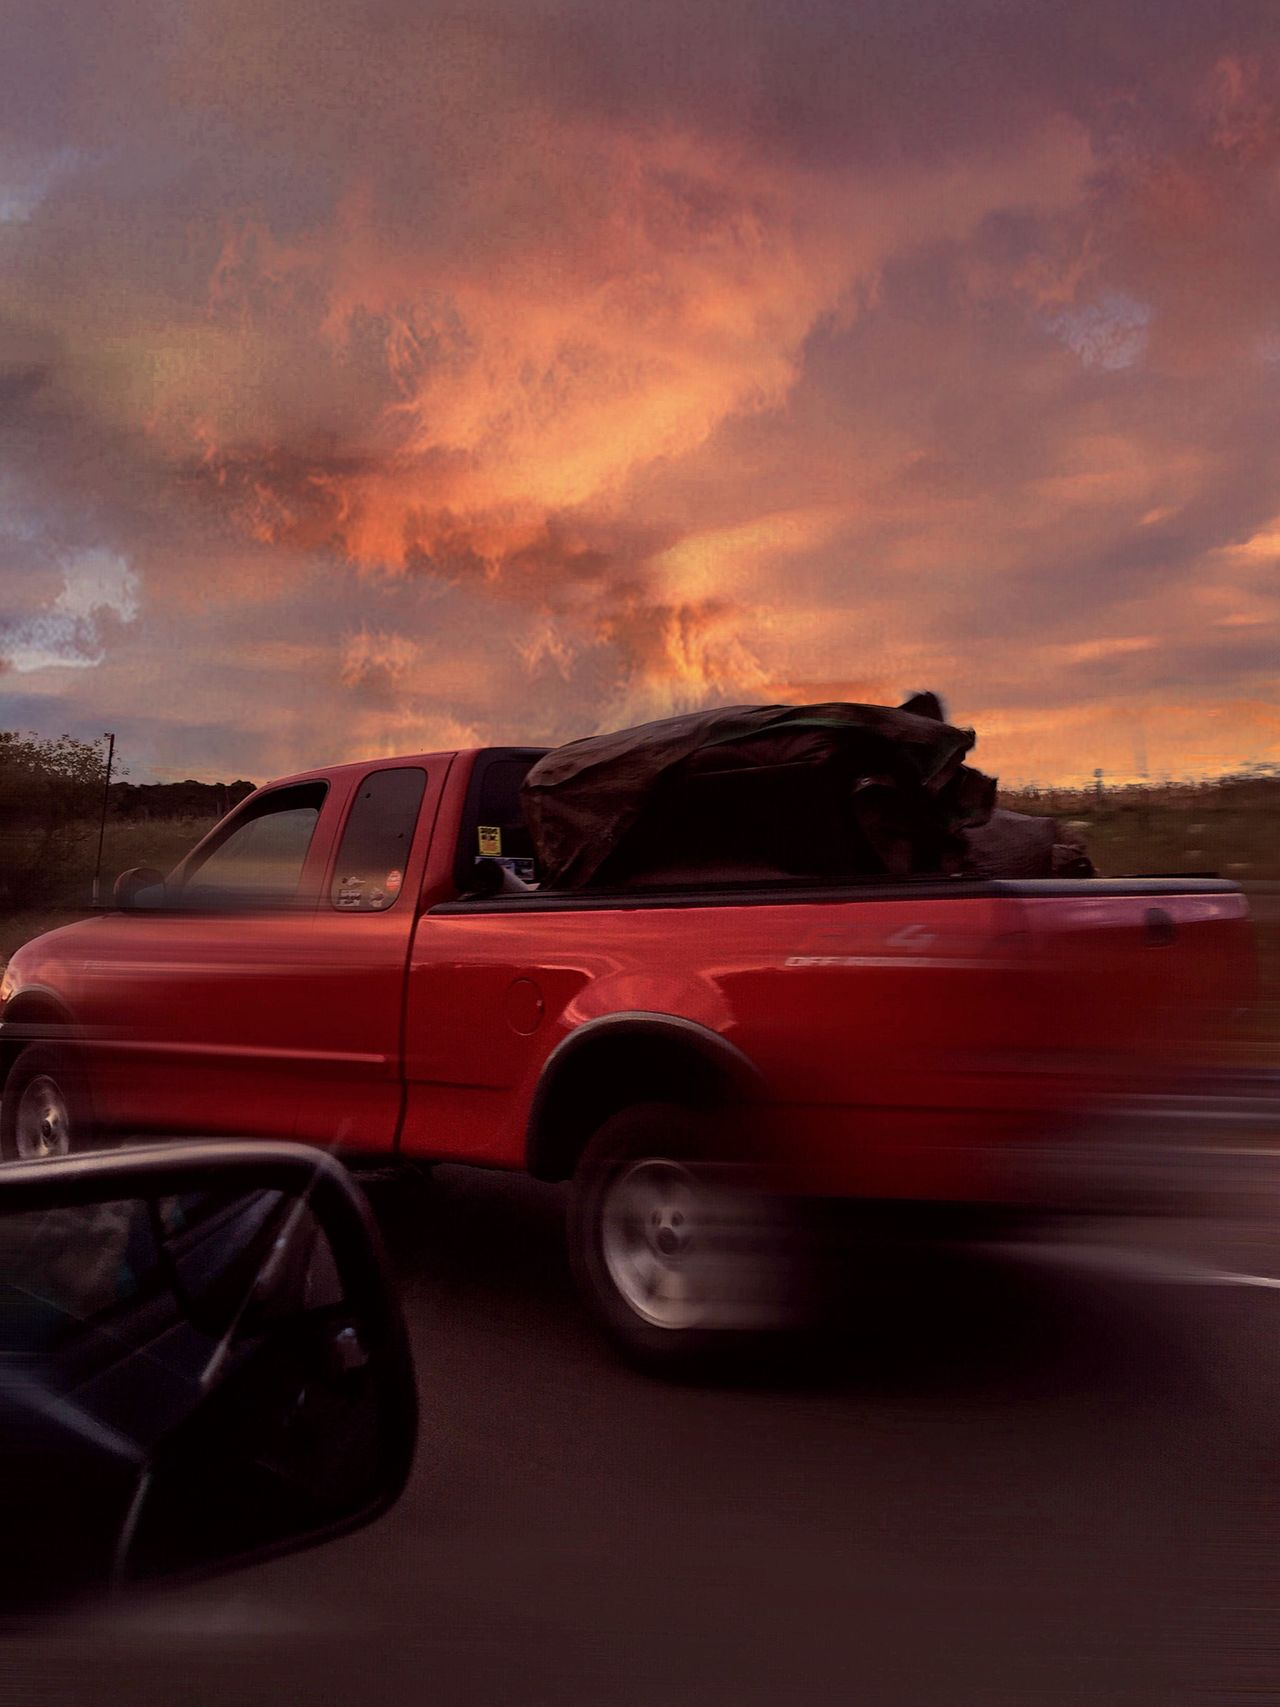 The Drive Red Truck Speed Speeding On The Road Sky And Clouds Highway Pick Up Truck